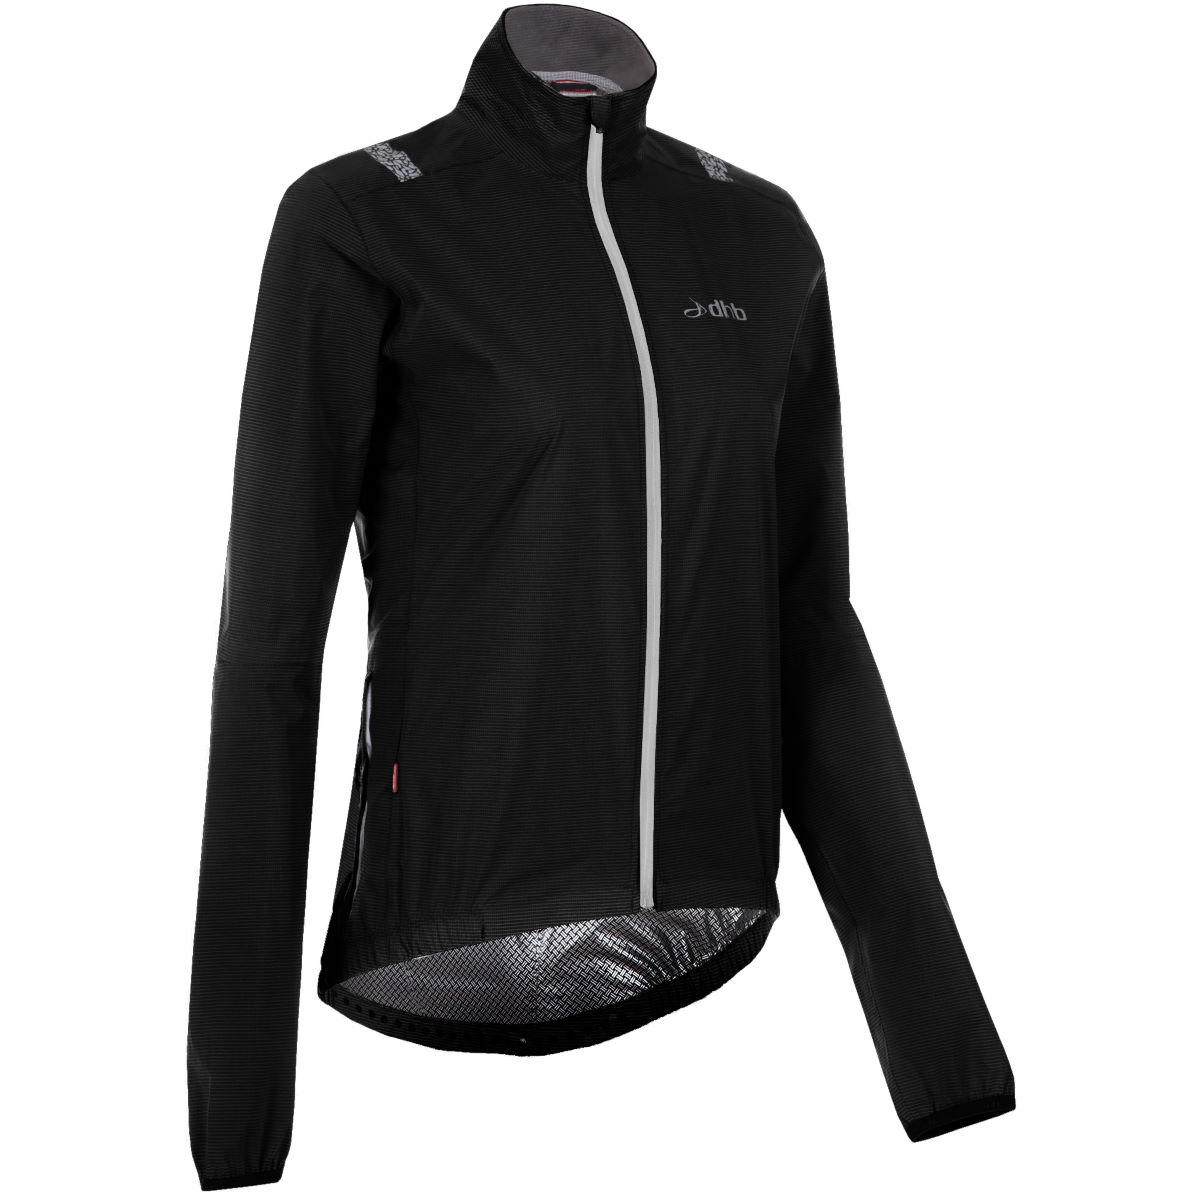 dhb Women's Cosmo Waterproof Jacket